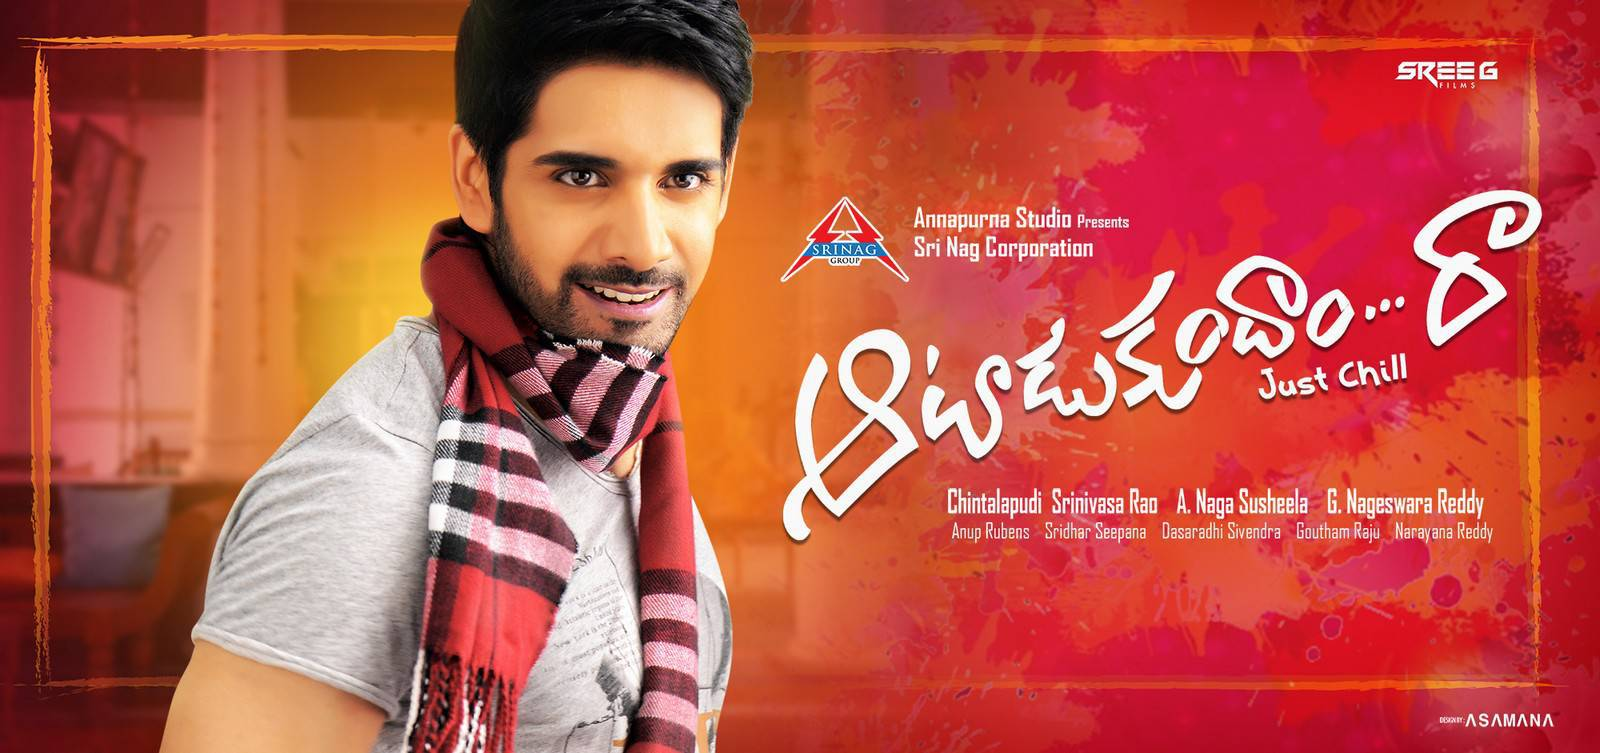 Aatadukundam raa telugu movie first look poster